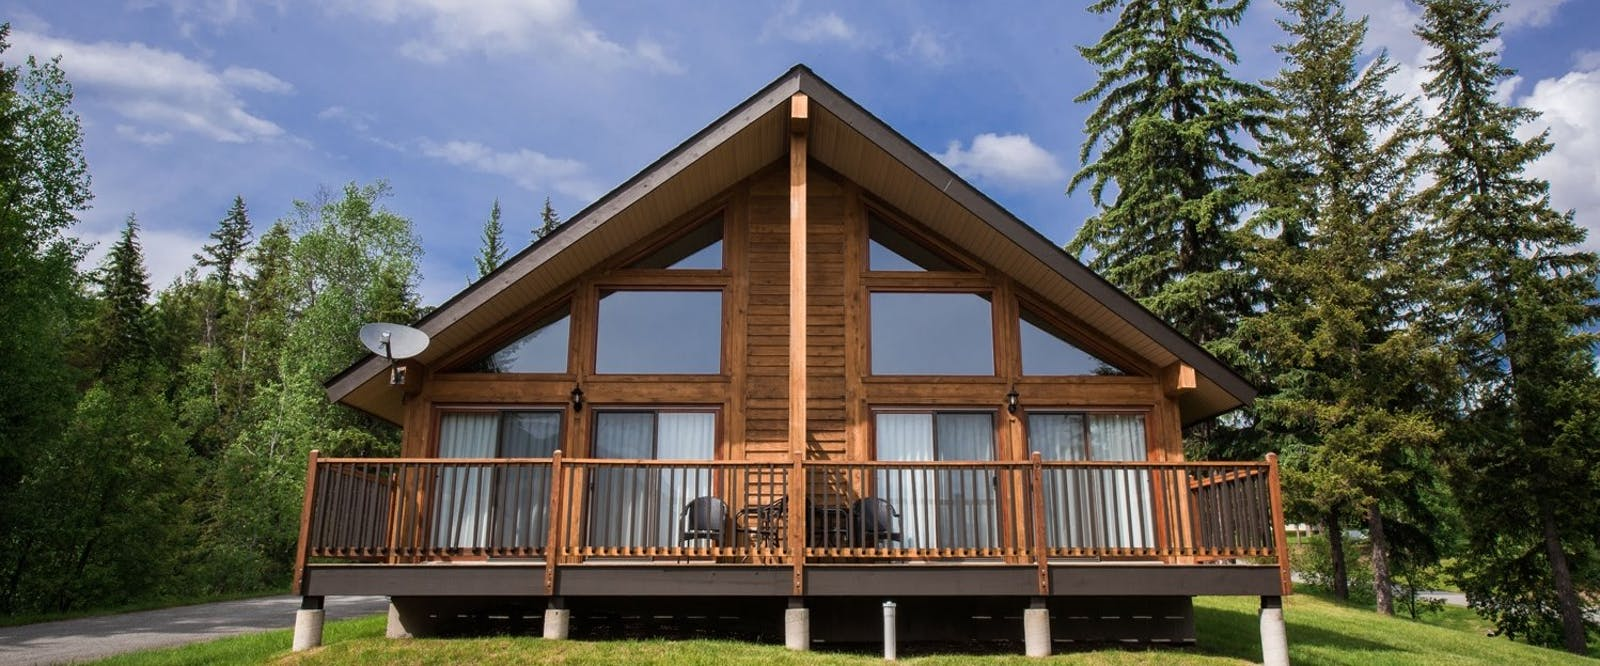 Chalet Exterior at Alpine Meadows Resort